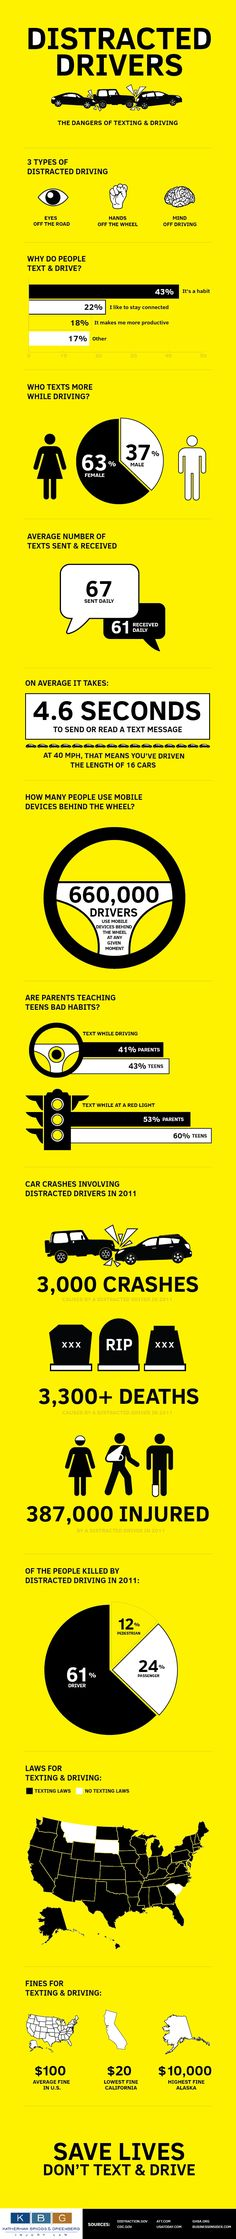 Distracted Drivers [INFOGRAPHIC] #texting#driving